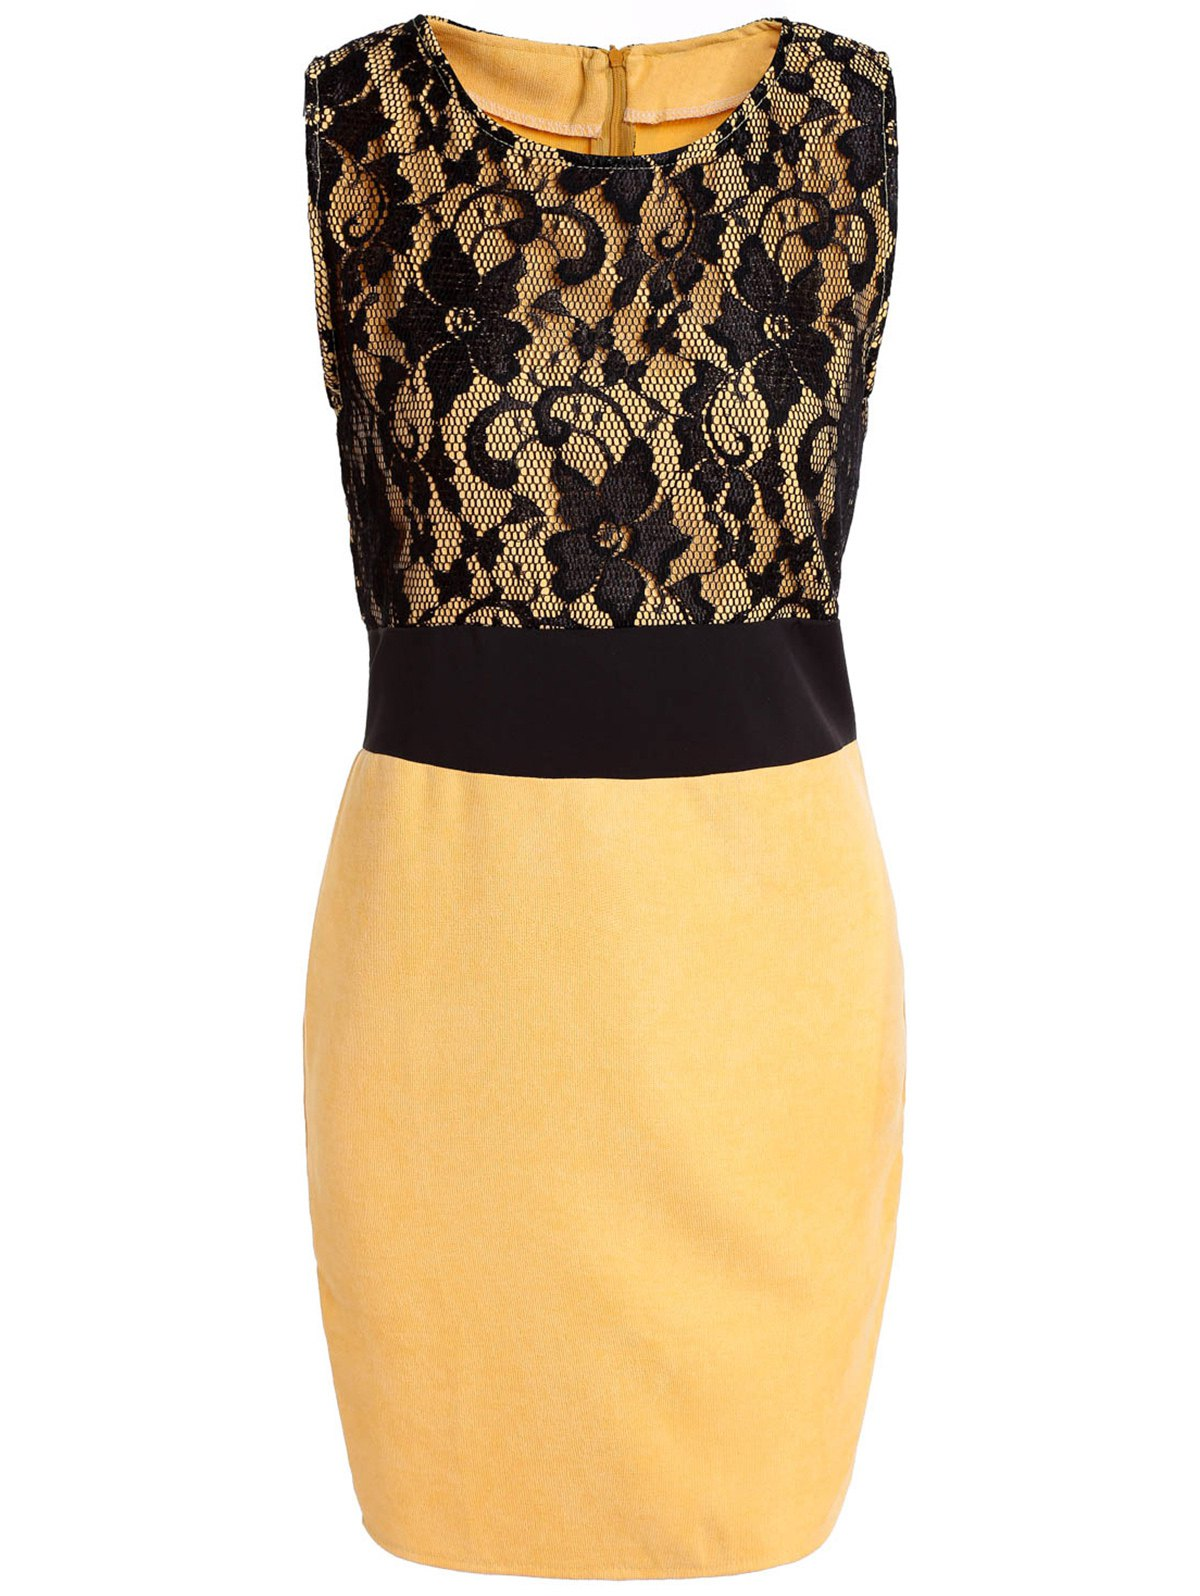 OL Style Scoop Neck Sleeveless Bodycon Lace Spliced Women's Dress - YELLOW M